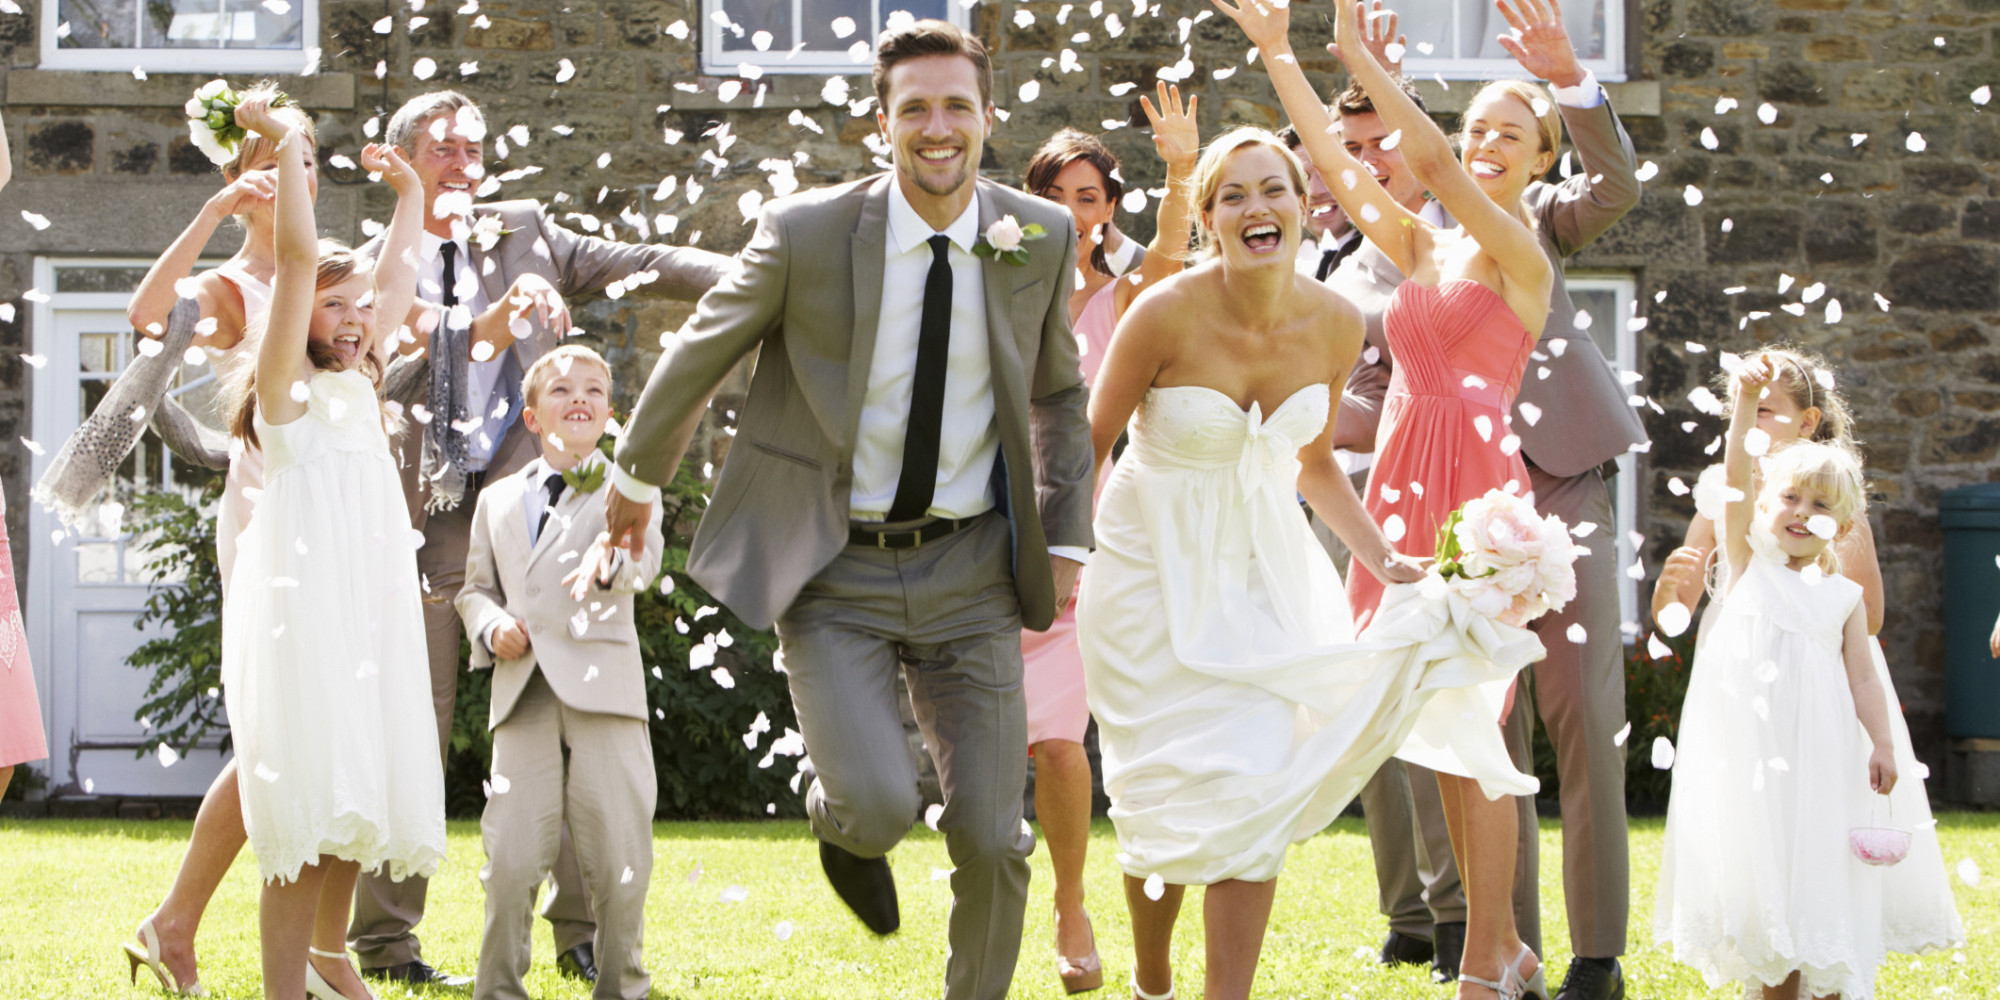 5 Tips for Blending Families With Children at Second Weddings | HuffPost